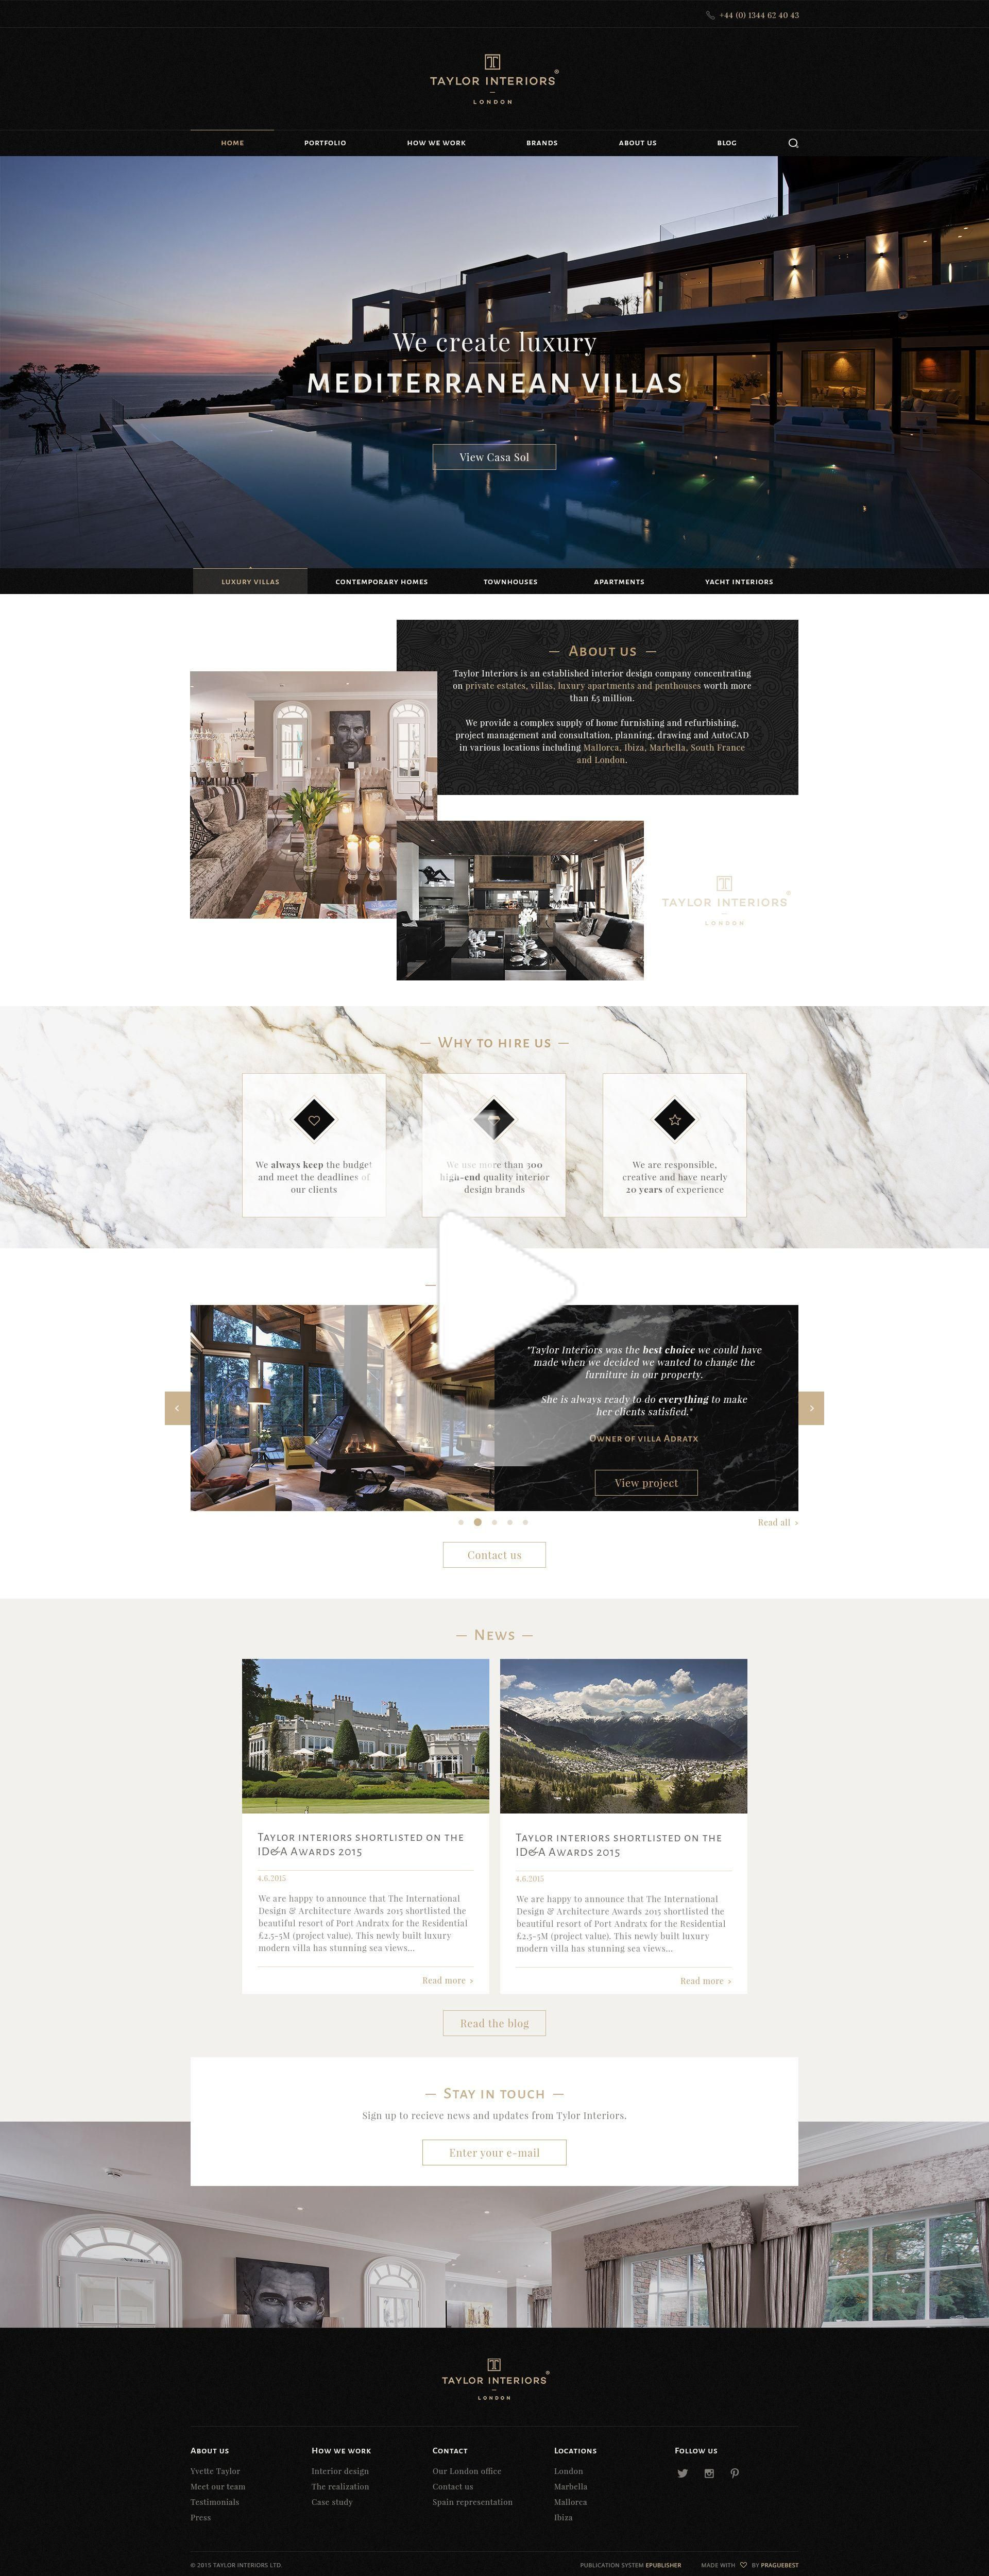 This Is One Of My Favorite Website Layouts Too In 2020 Real Estate Website Design Hotel Website Design Real Estate Web Design